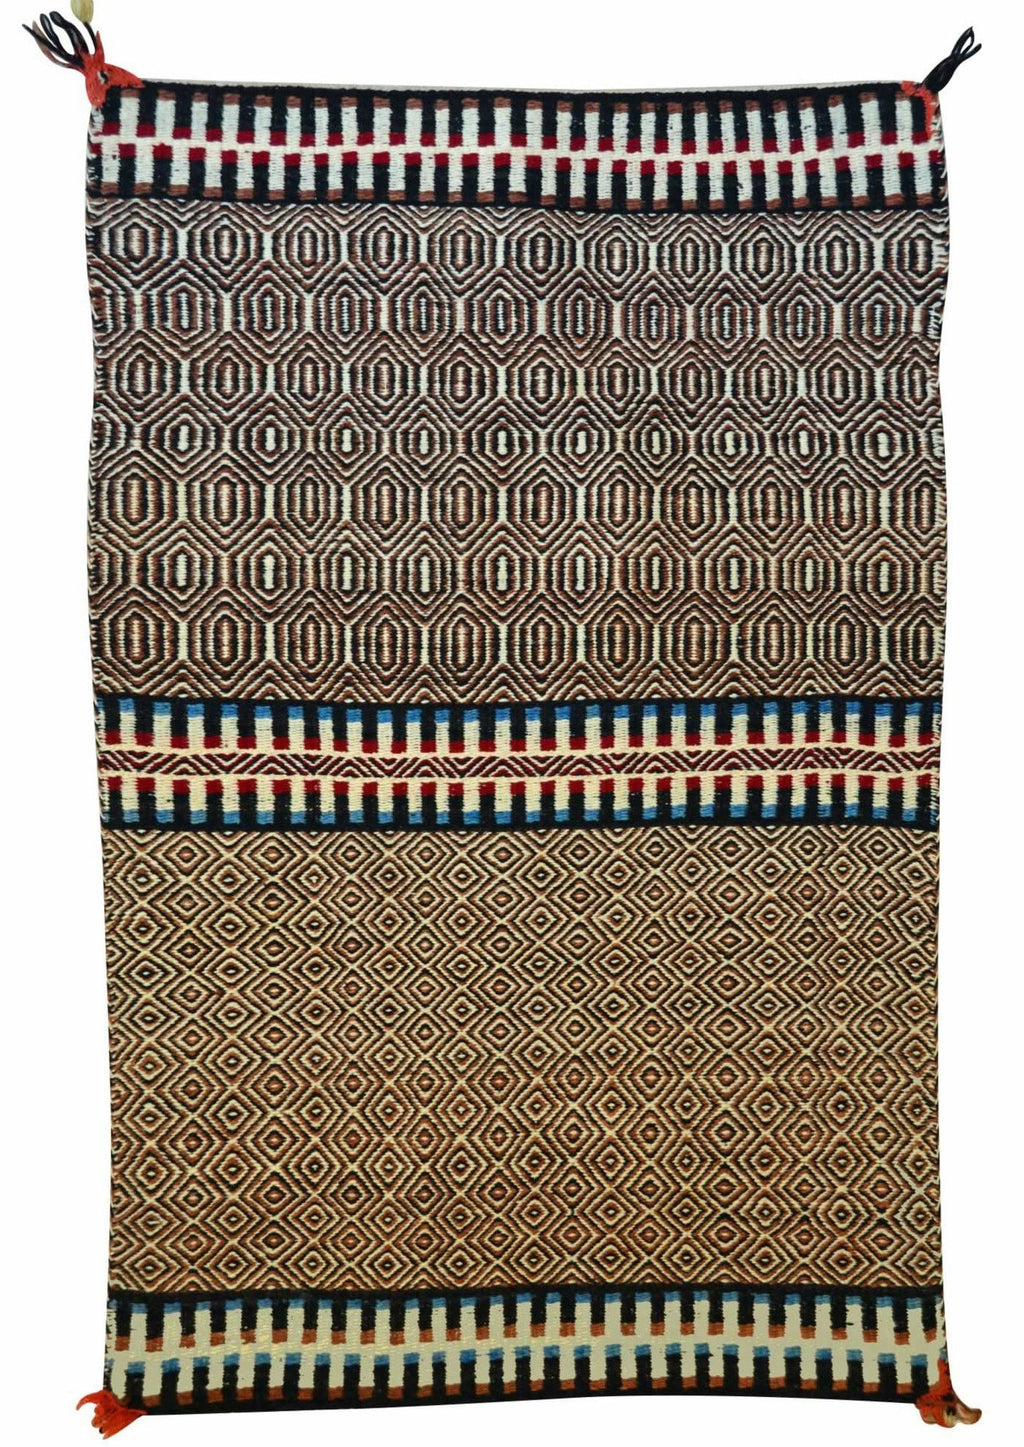 Saddle Blanket - Double Twill Navajo Weaving : Historic : GHT 2242 : 32″ x 50″ - Getzwiller's Nizhoni Ranch Gallery